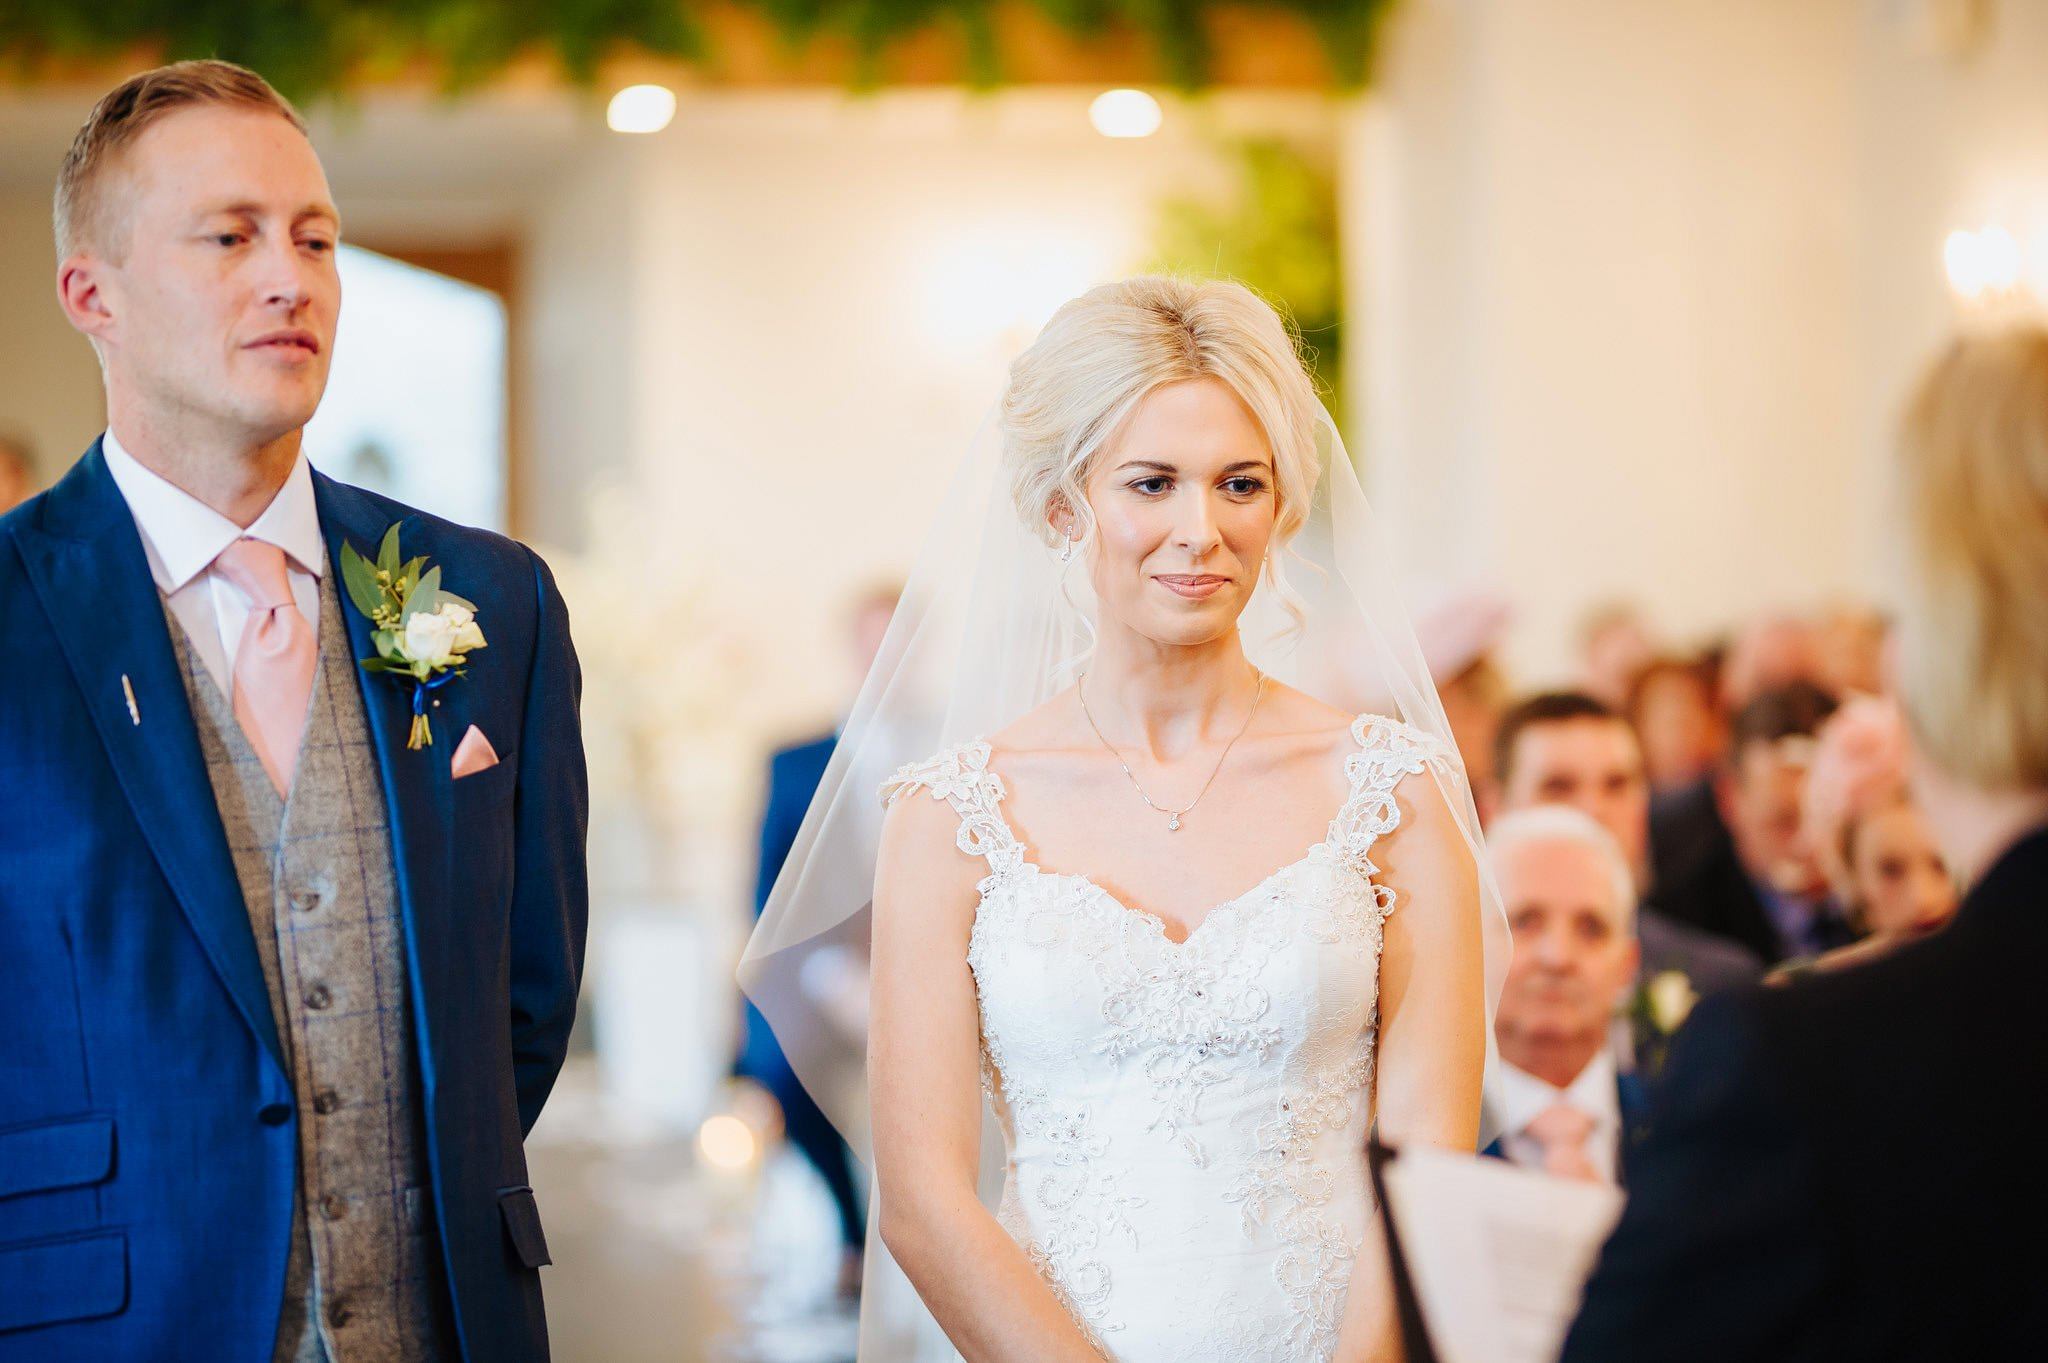 Sigma 85mm F1.4 ART review vs Wedding Photography 6